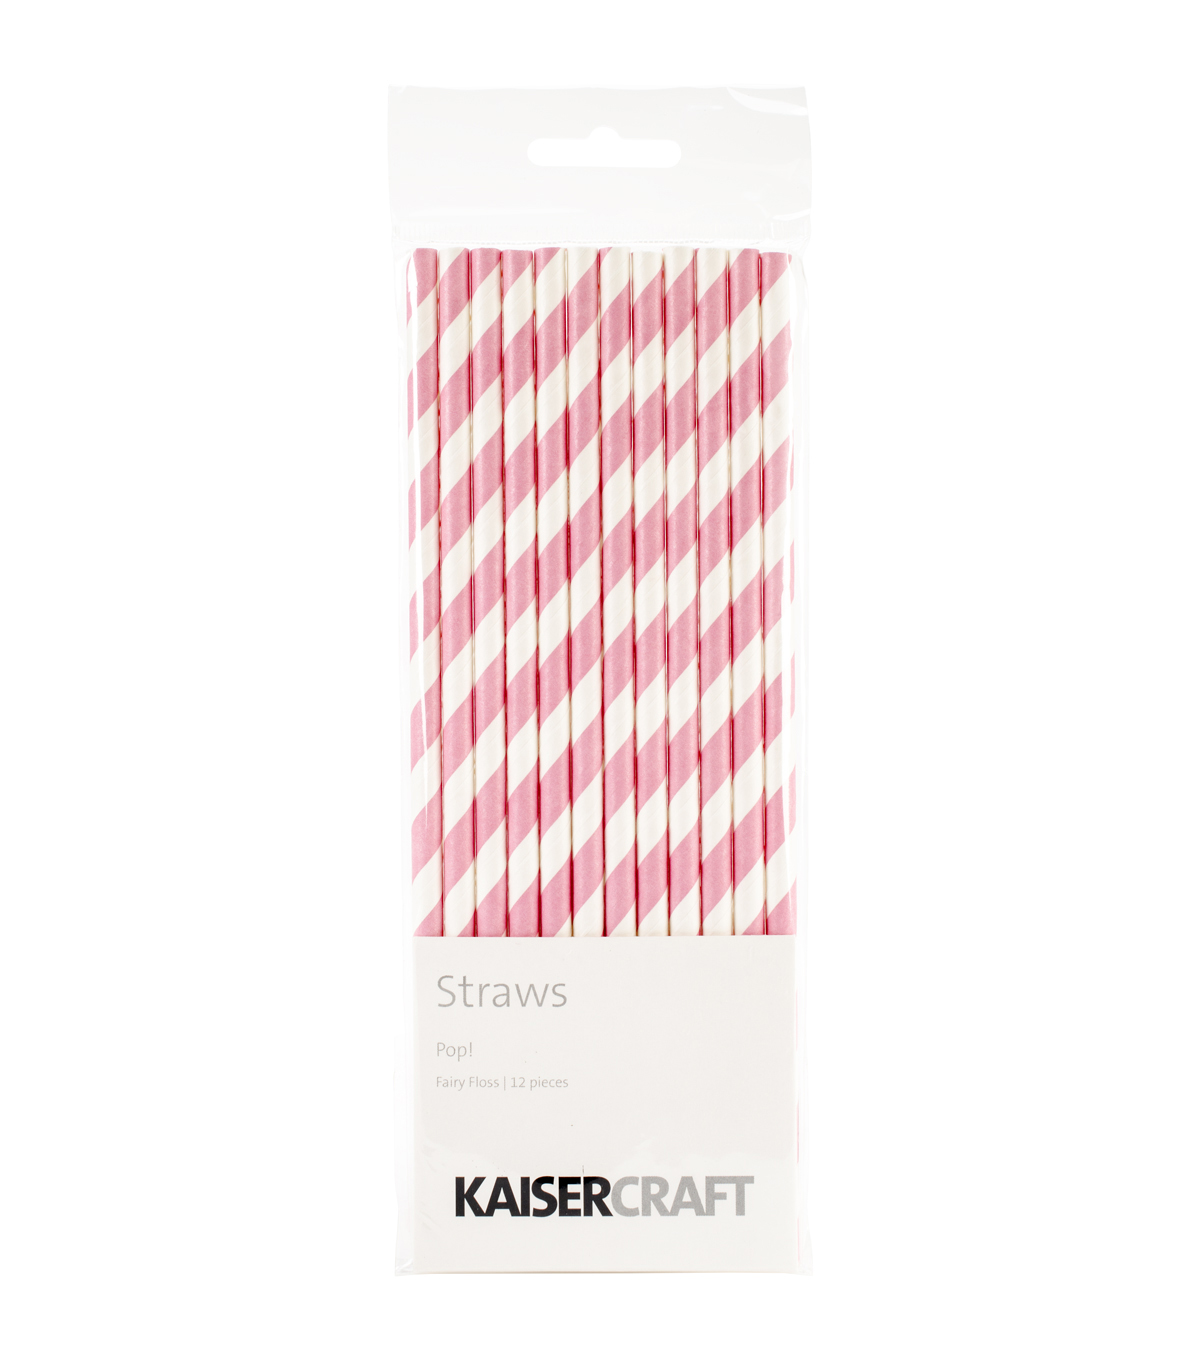 Kaisercraft-Pop! Straws 12/Pkg-Fairy Floss